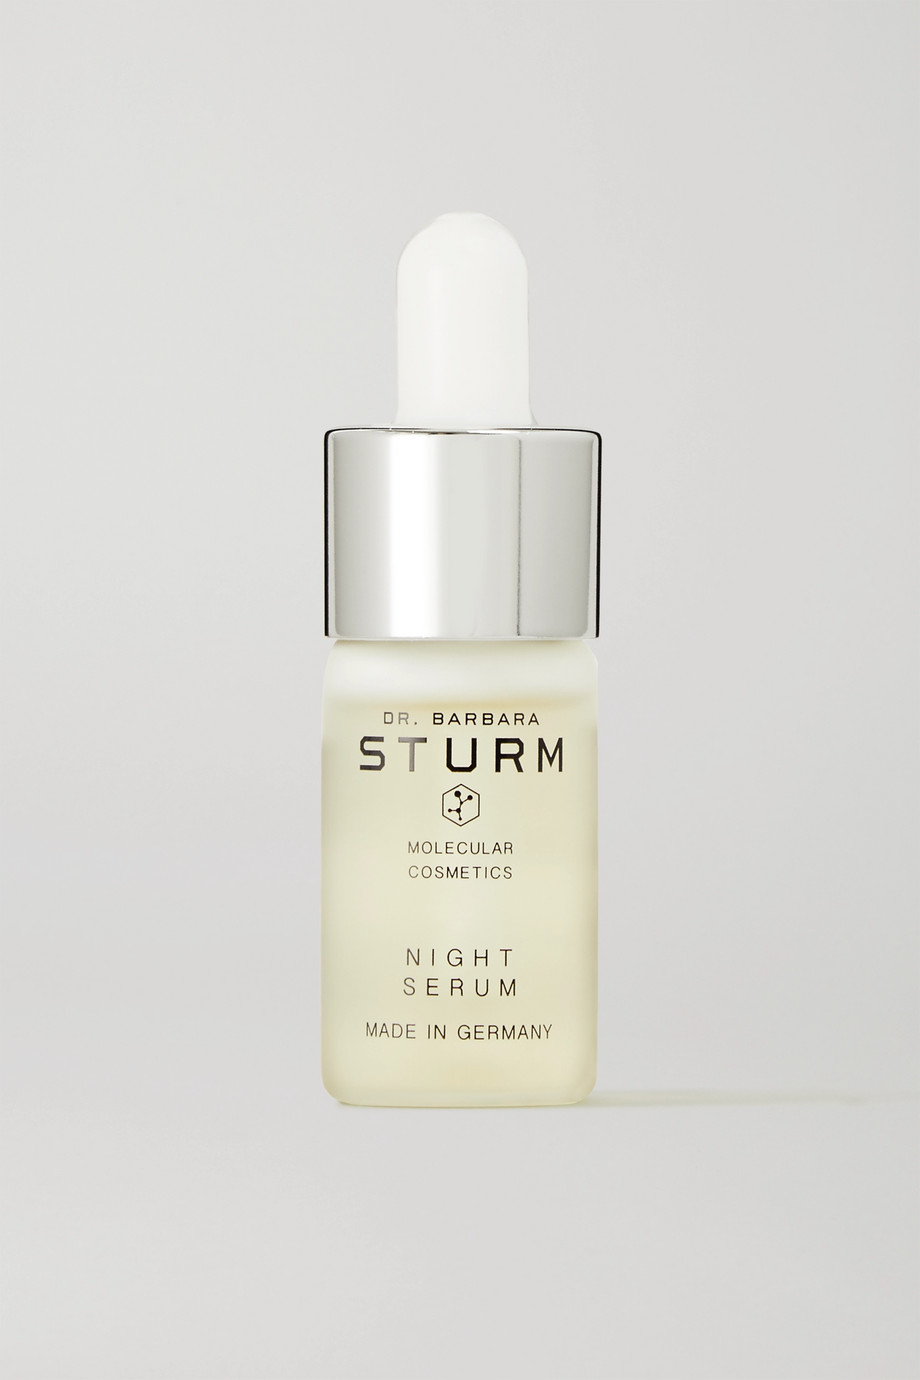 Dr. Barbara Sturm Mini sérum de nuit, 10 ml